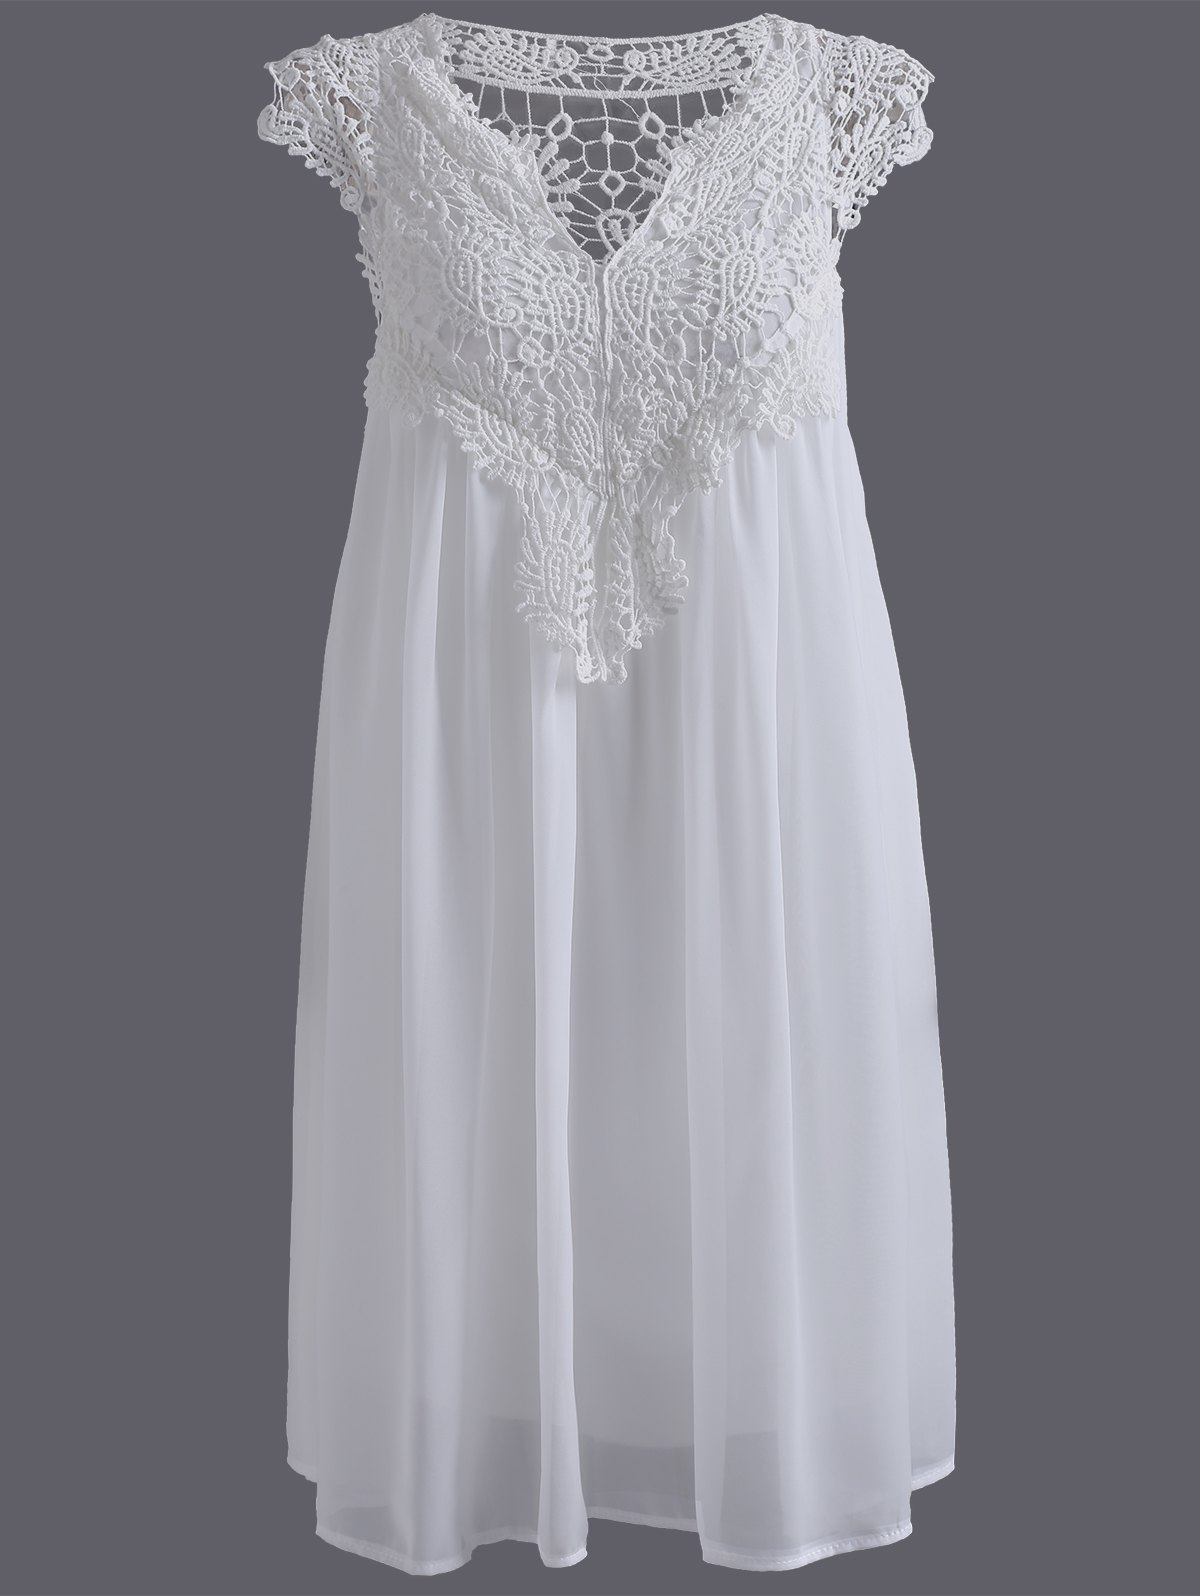 Crochet Panel Short Plus Size Shift Babydoll DressWOMEN<br><br>Size: 5XL; Color: WHITE; Style: Casual; Material: Lace,Polyester; Silhouette: A-Line; Dresses Length: Mini; Neckline: V-Neck; Sleeve Length: Short Sleeves; Pattern Type: Patchwork; With Belt: No; Season: Summer; Weight: 0.3300kg; Package Contents: 1 x Dress;